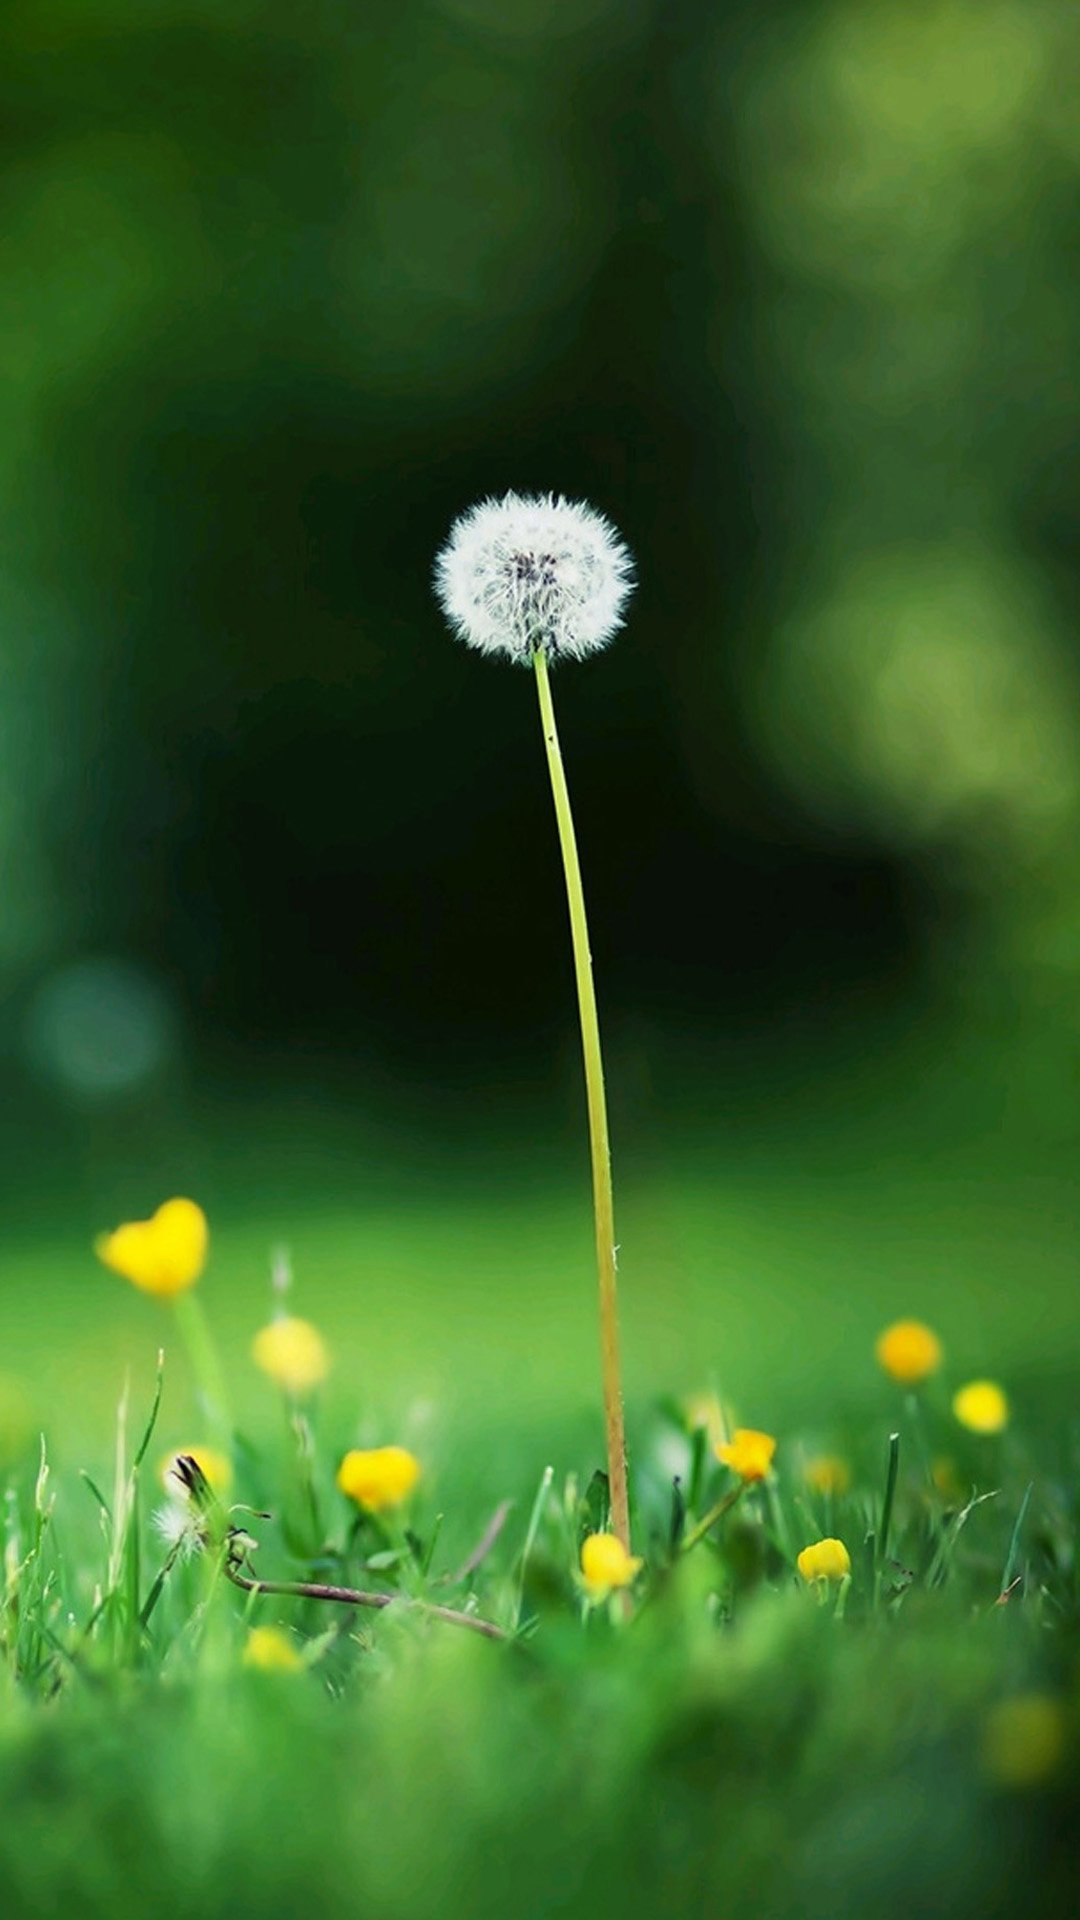 Autumn Dandelion Samsung Wallpapers, Samsung Galaxy S5, Galaxy S4 ...